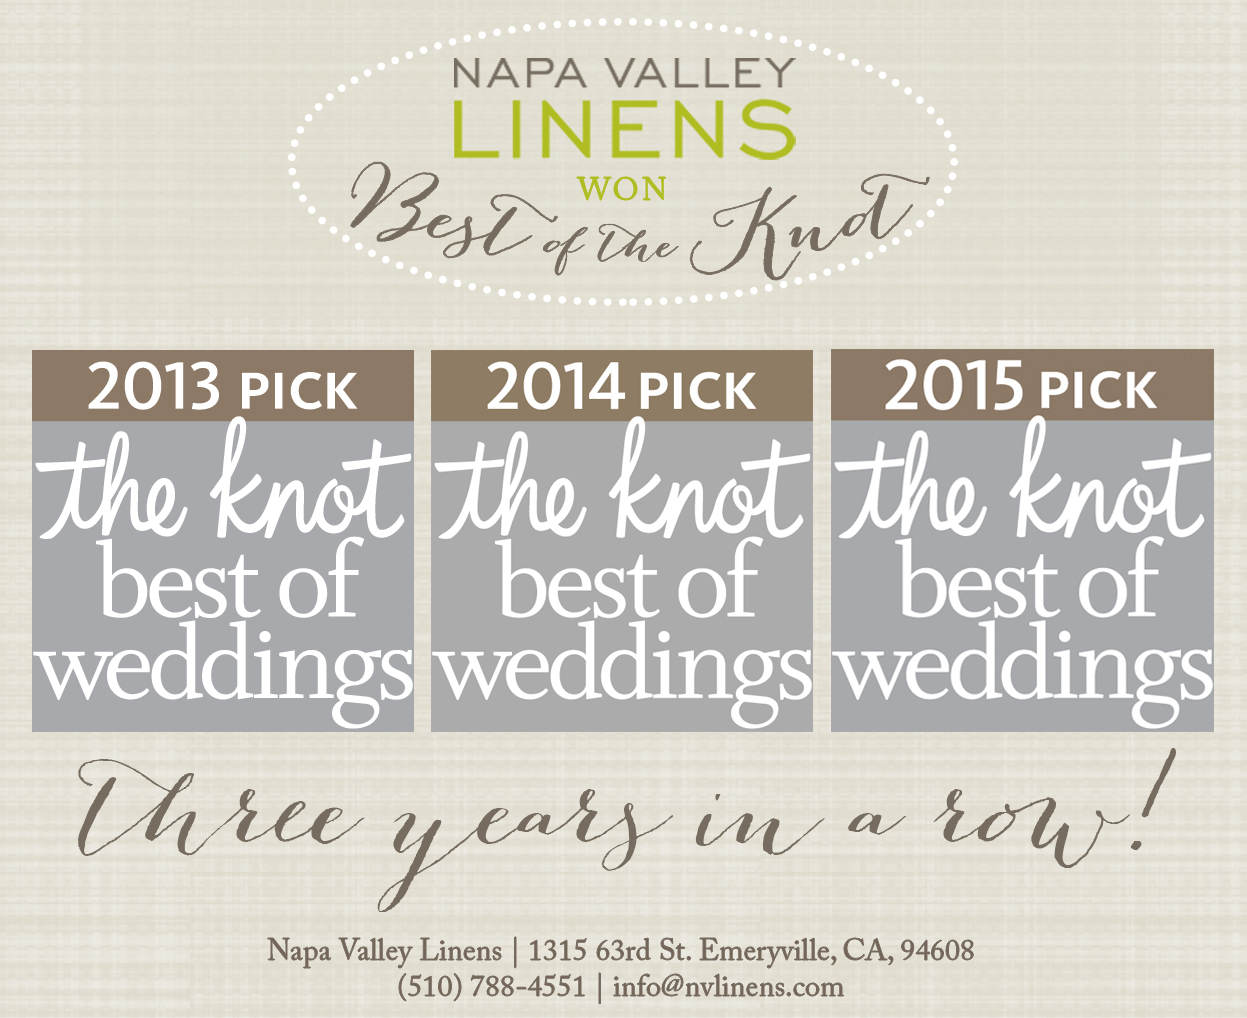 Napa Valley Linens is Voted Best of the Knot for 3 Years in a Row!